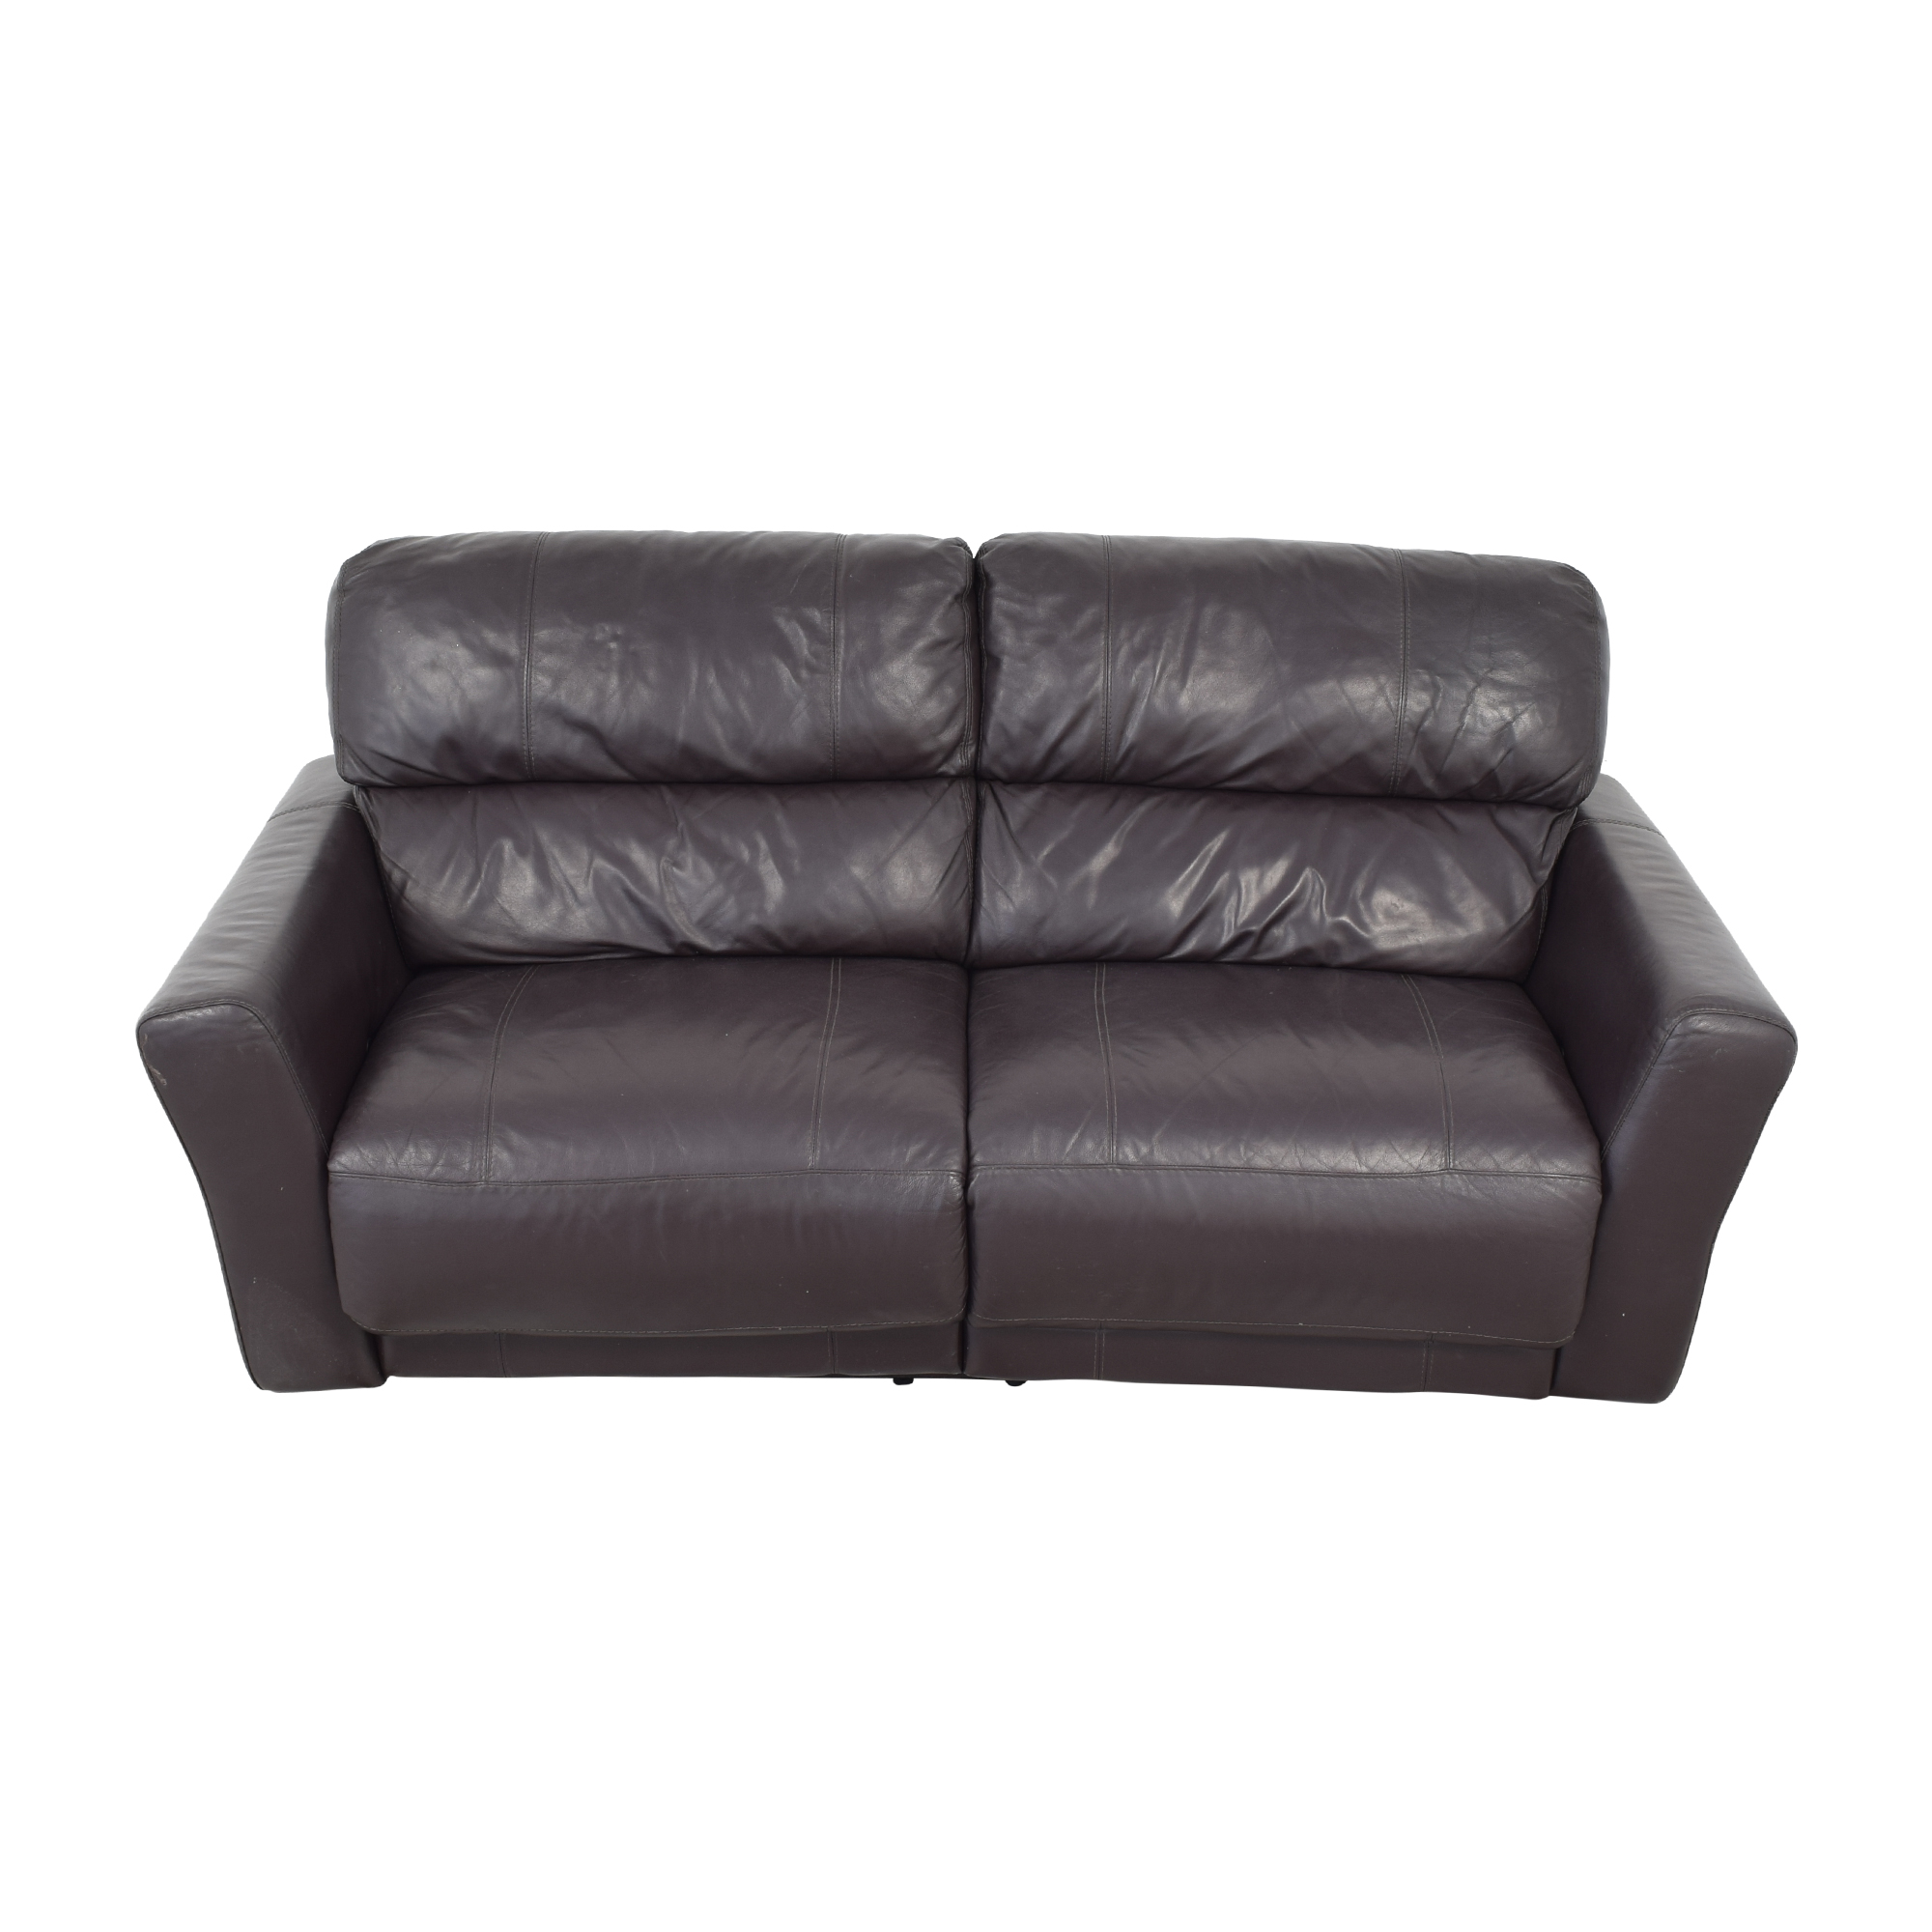 buy Chateau d'Ax Reclining Loveseat Chateau d'Ax